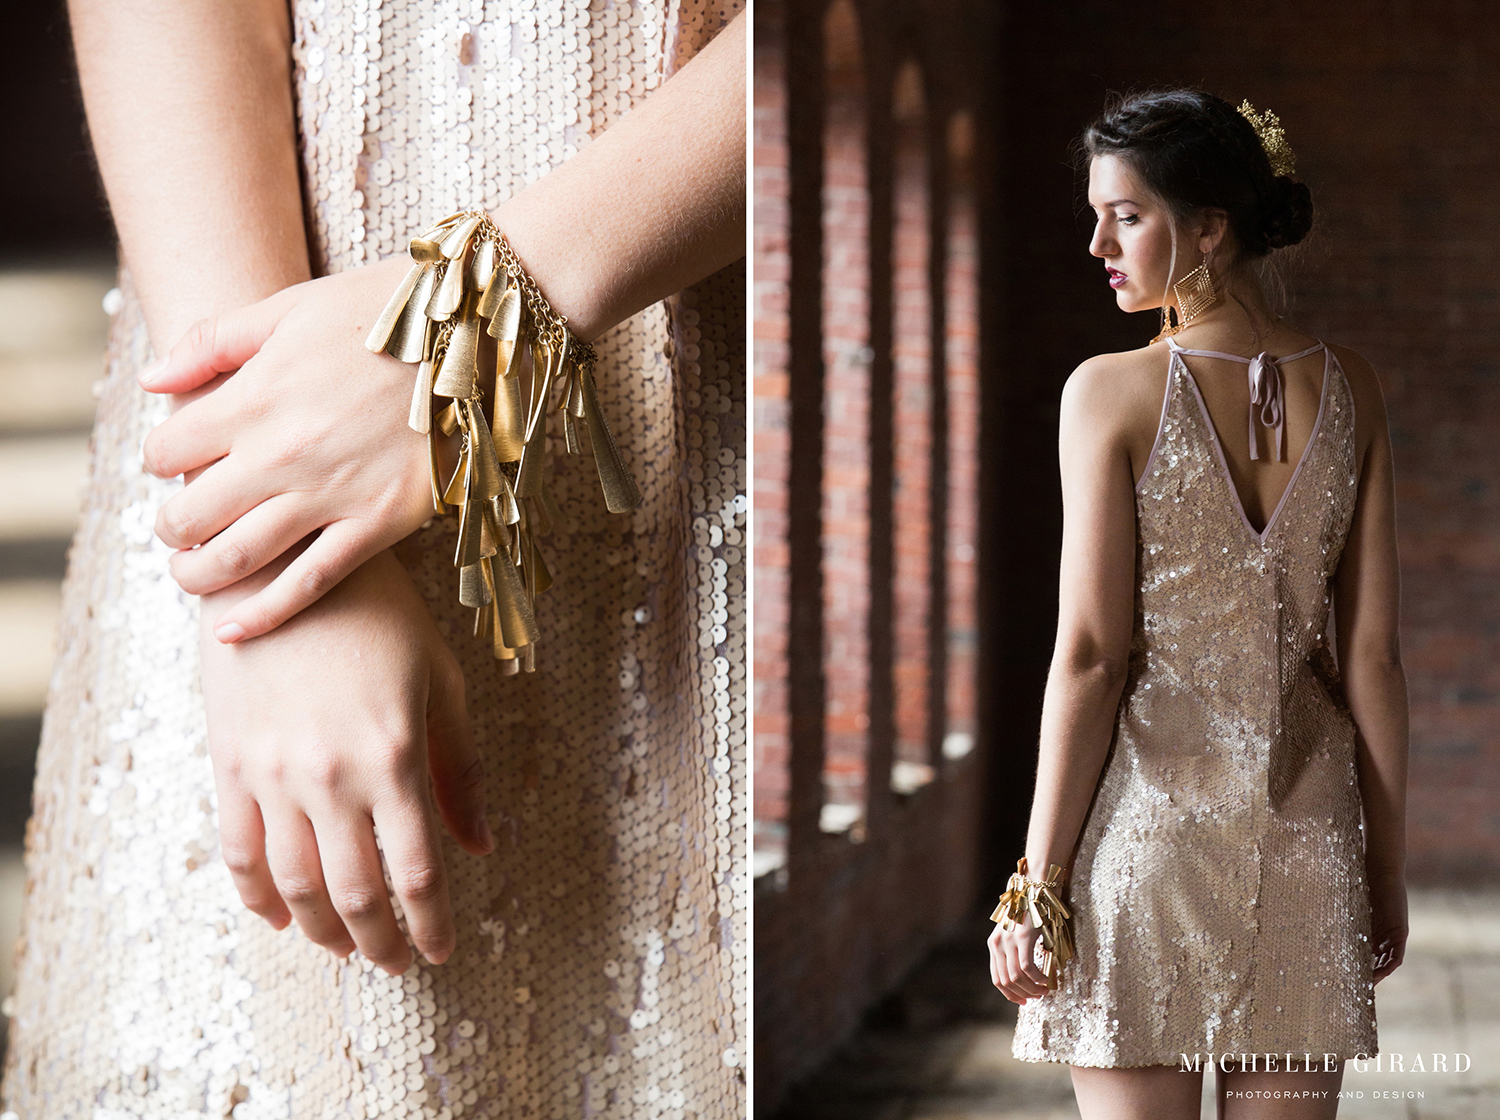 RetroStyling_FactoryWedding_MichelleGirardPhotography3.jpg